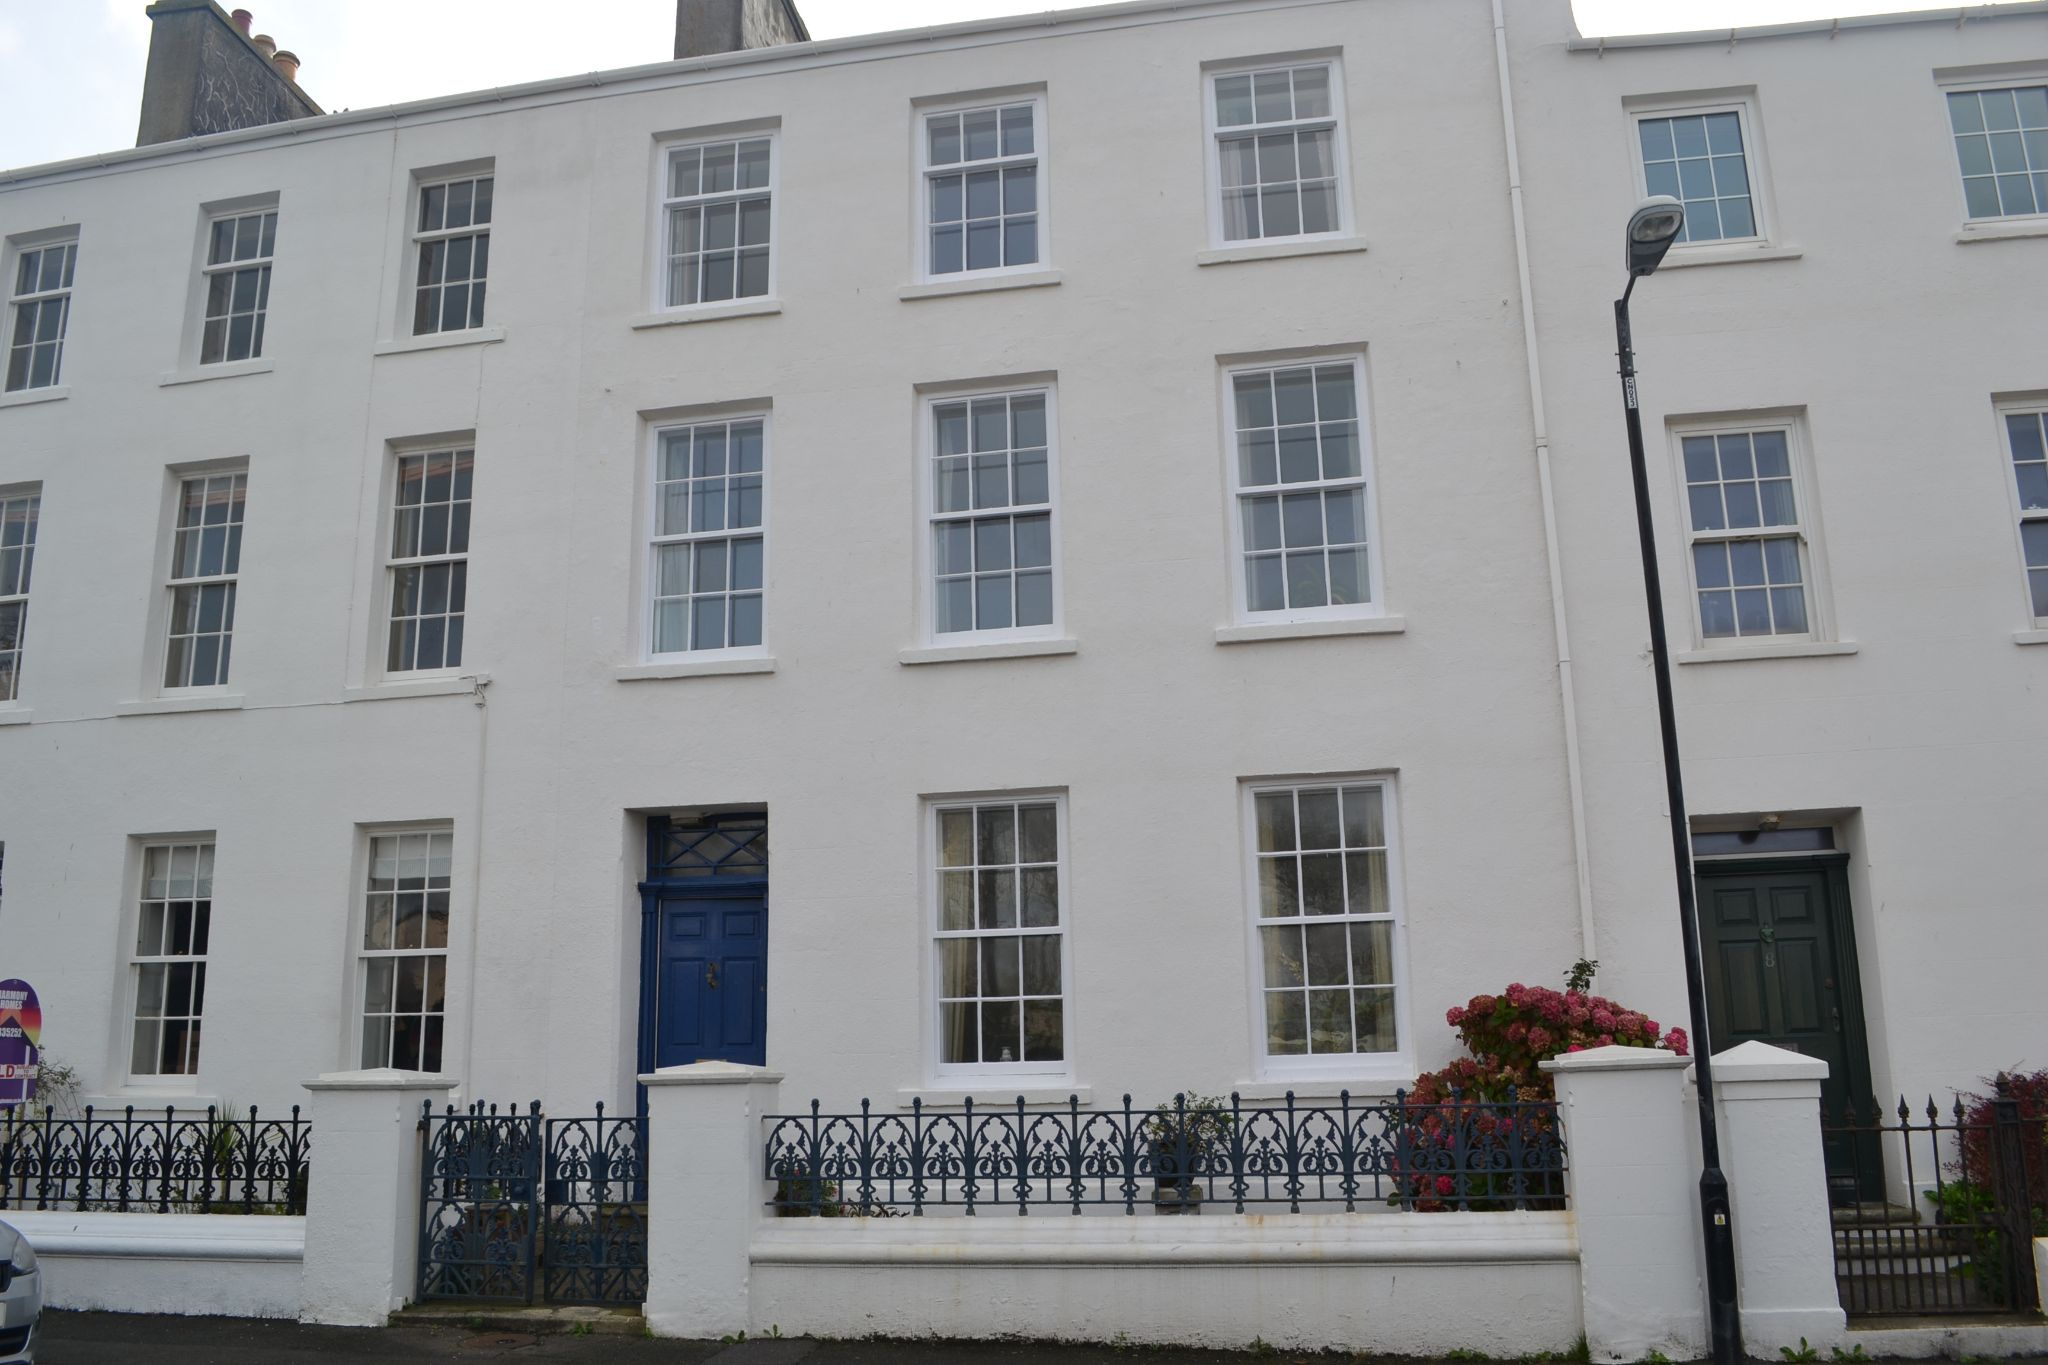 7 bedroom mid terraced house For Sale in Castletown - Photograph 1